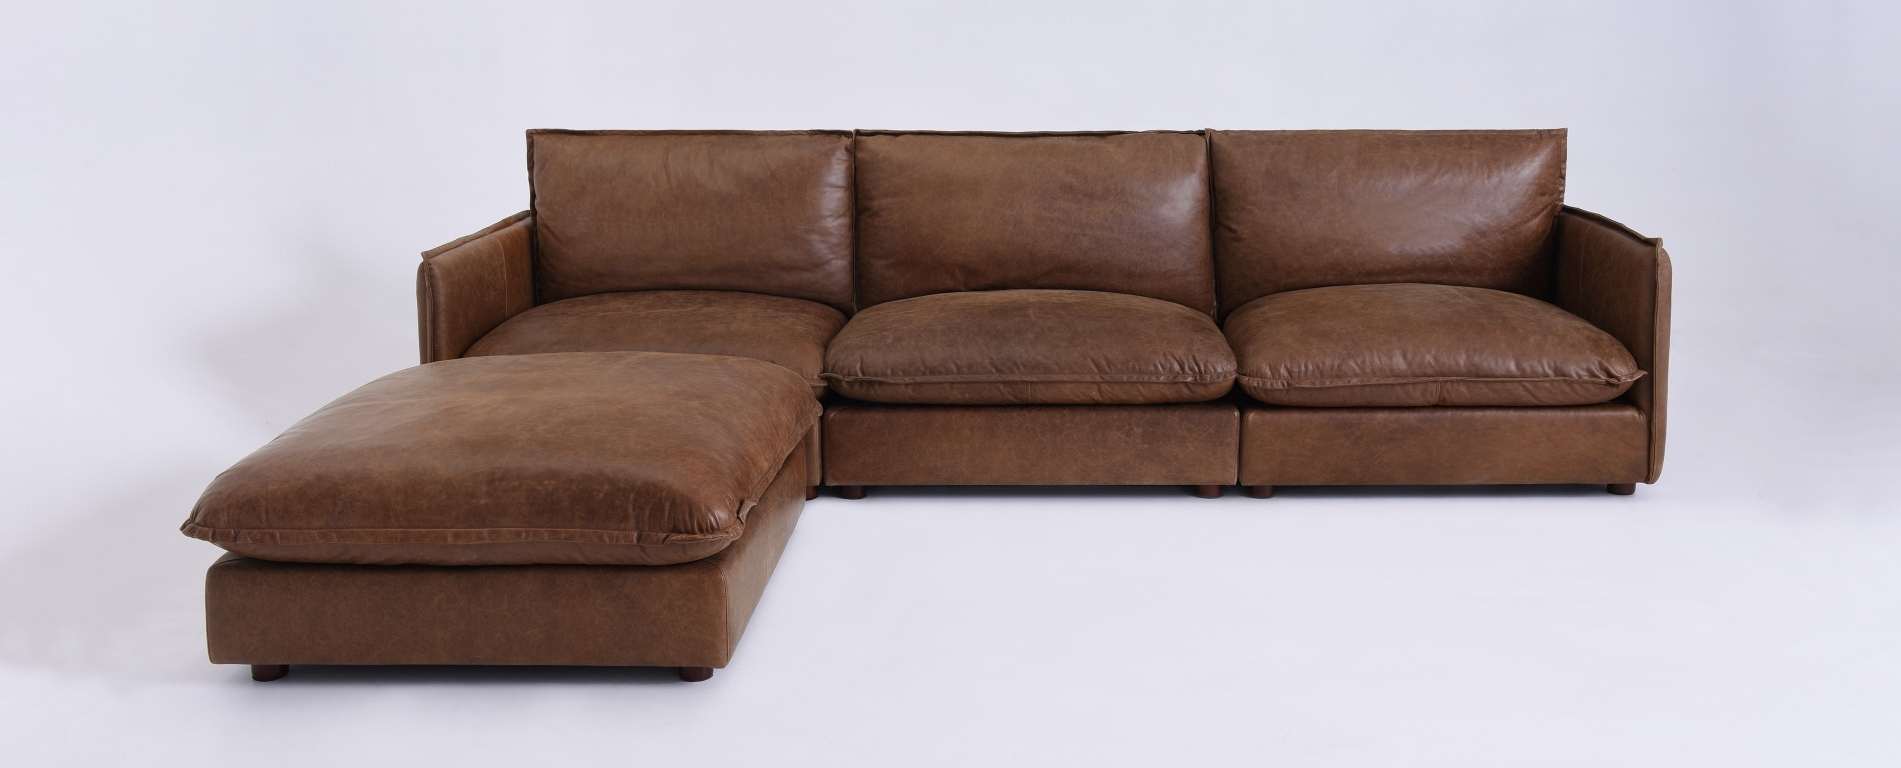 Popular Neva Modular Leather Chaise Sectional In Leather Chaise Sectionals (View 11 of 15)